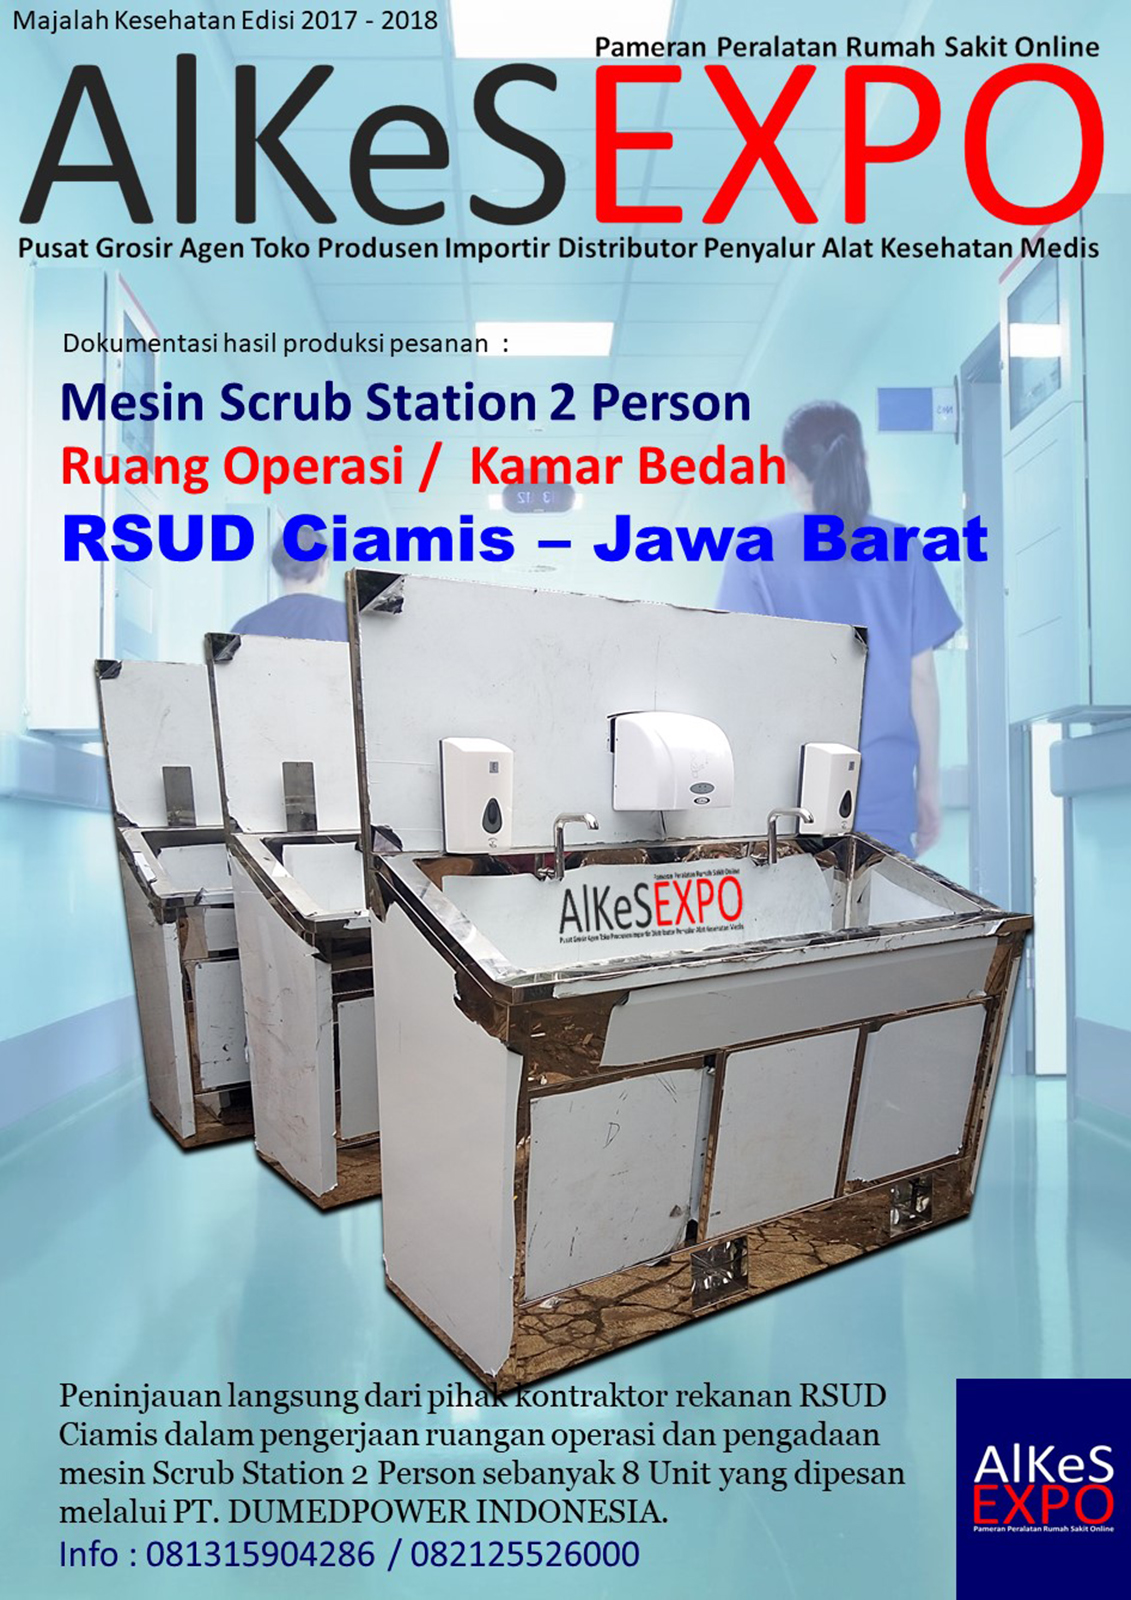 Scrub Sink Station 2 Person Automatic Manual - RSUD Ciamis Jawa Barat